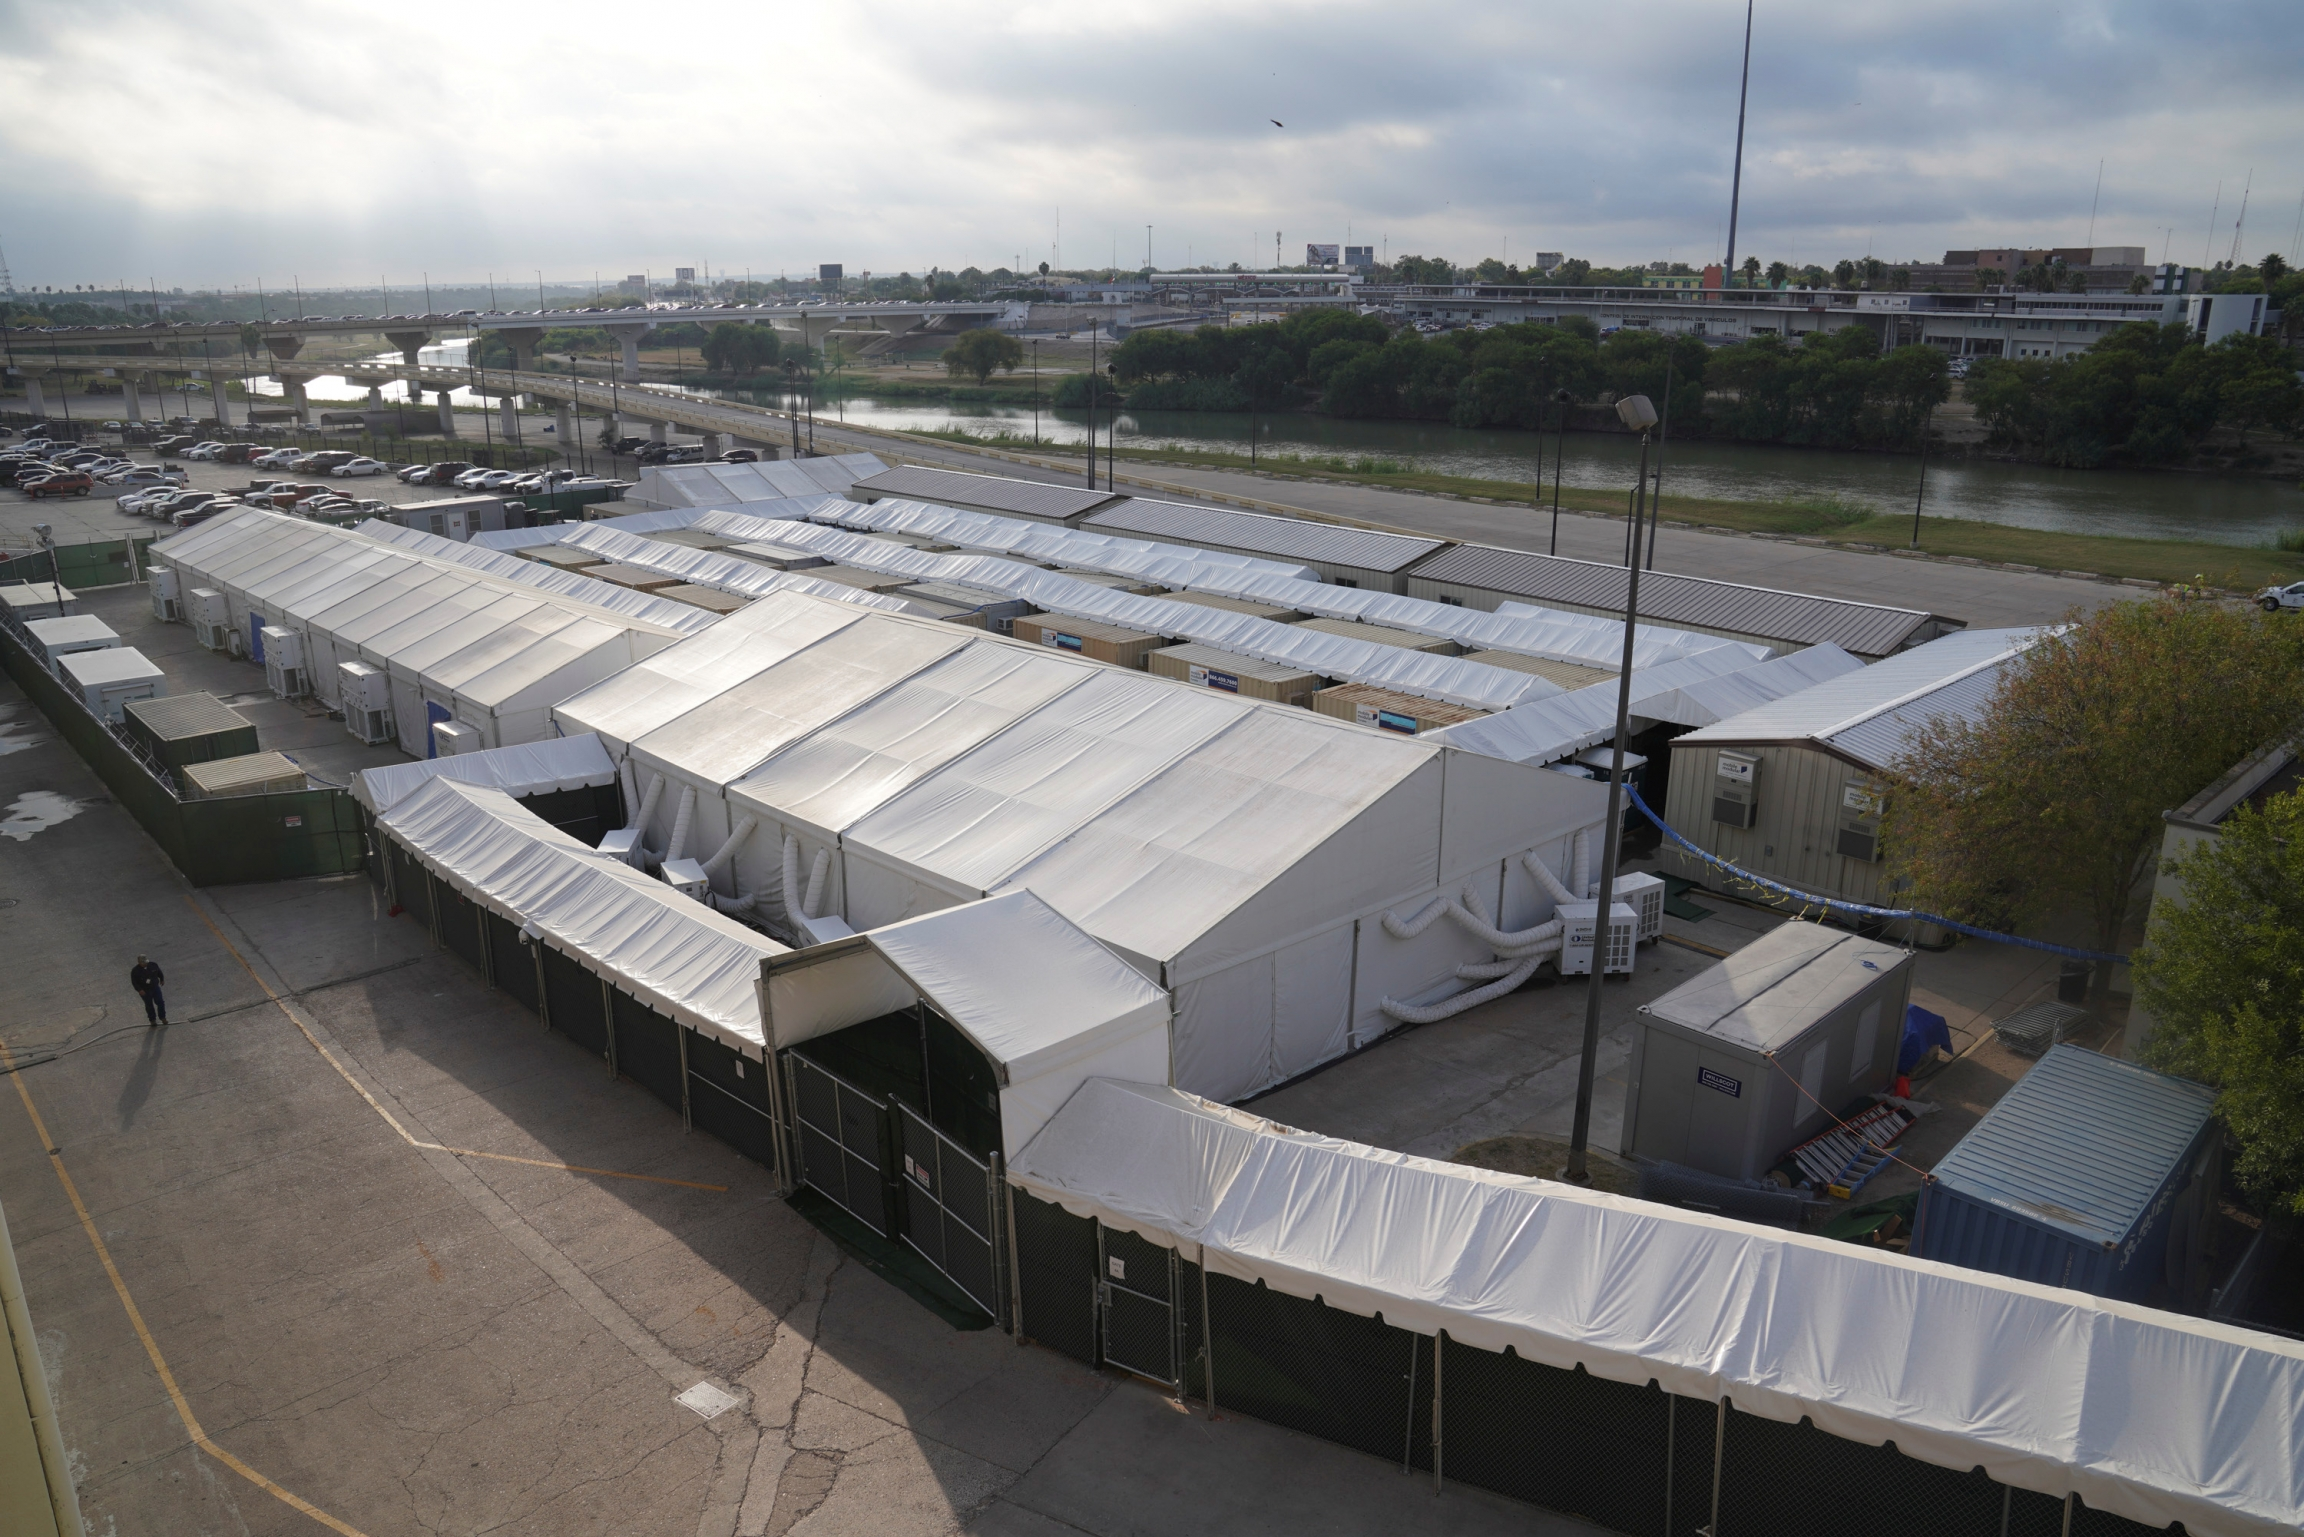 Soft-sided immigration court tents as seen in Laredo, Texas, October 9, 2019.